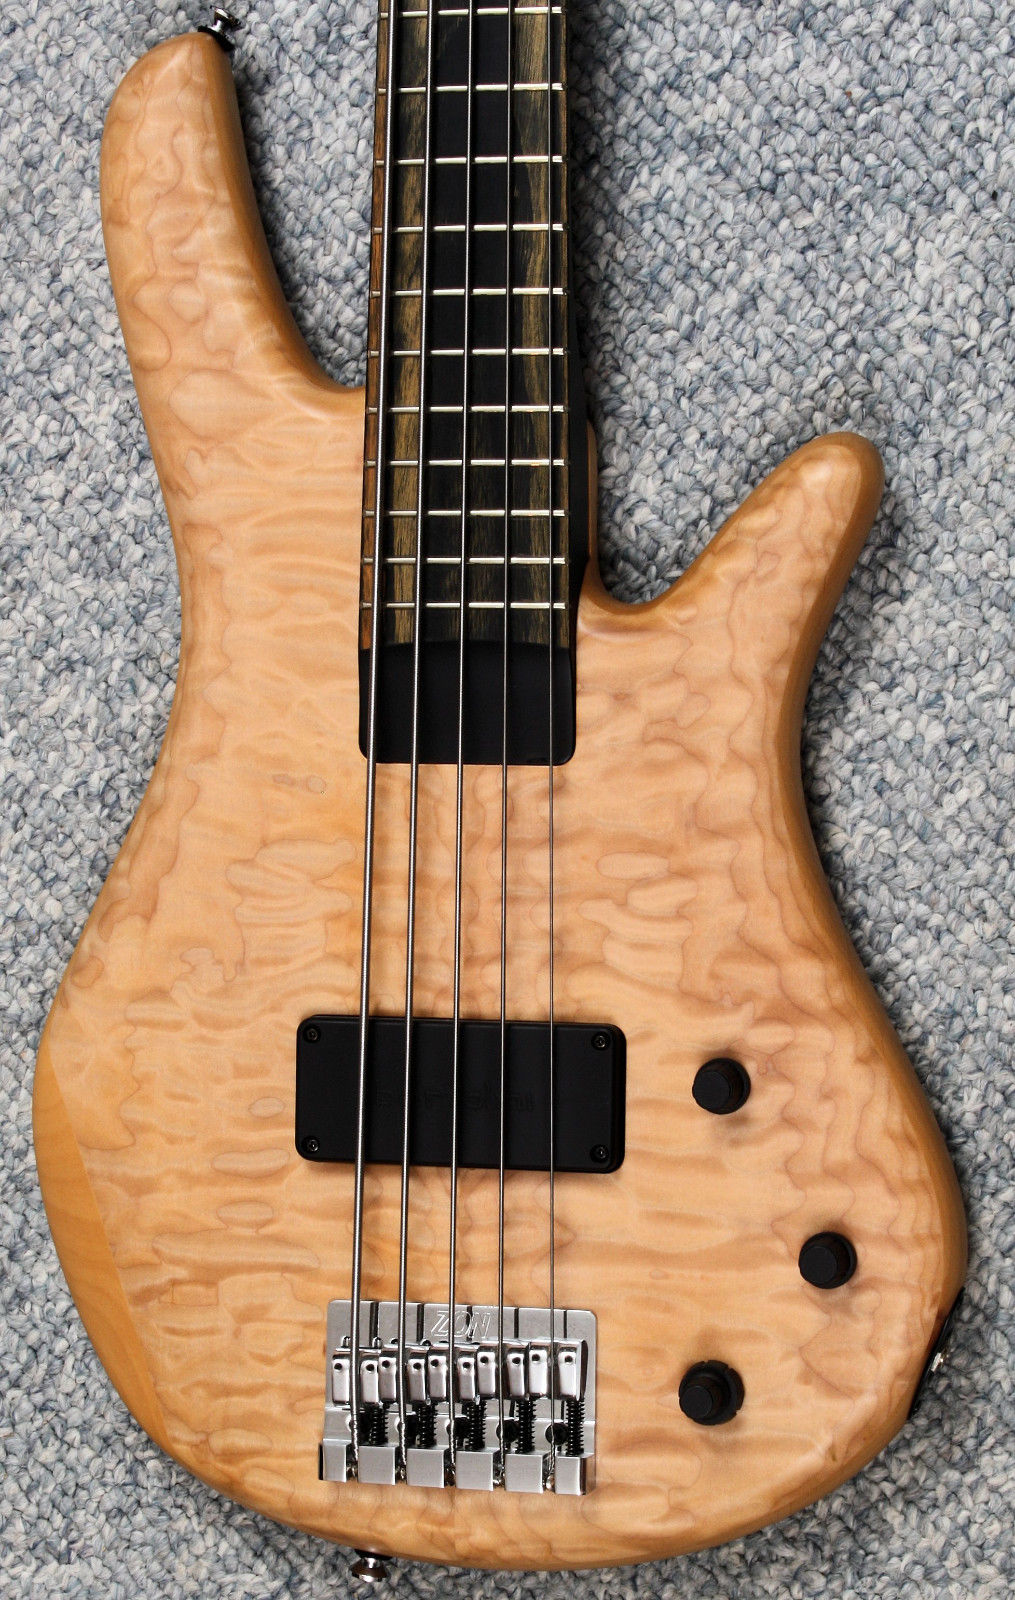 zon sonus 5 1 5 string electric bass new old stock clearance sale. Black Bedroom Furniture Sets. Home Design Ideas